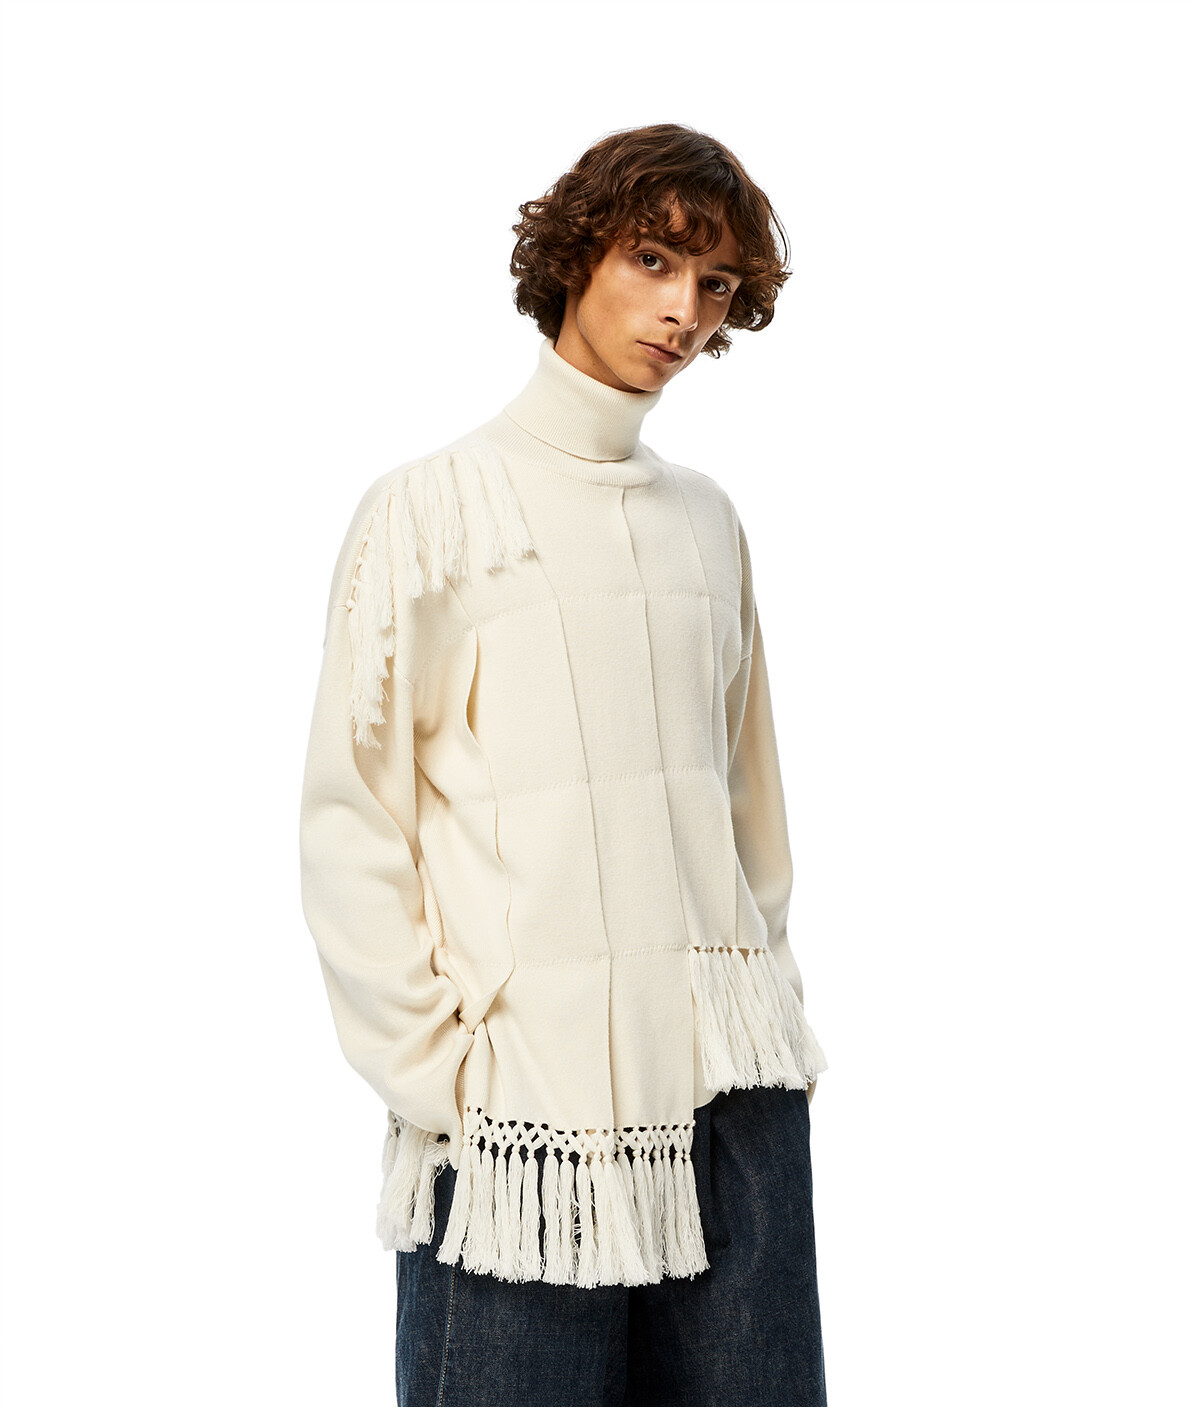 LOEWE High Neck Asym Sweater Fringes Ecru front